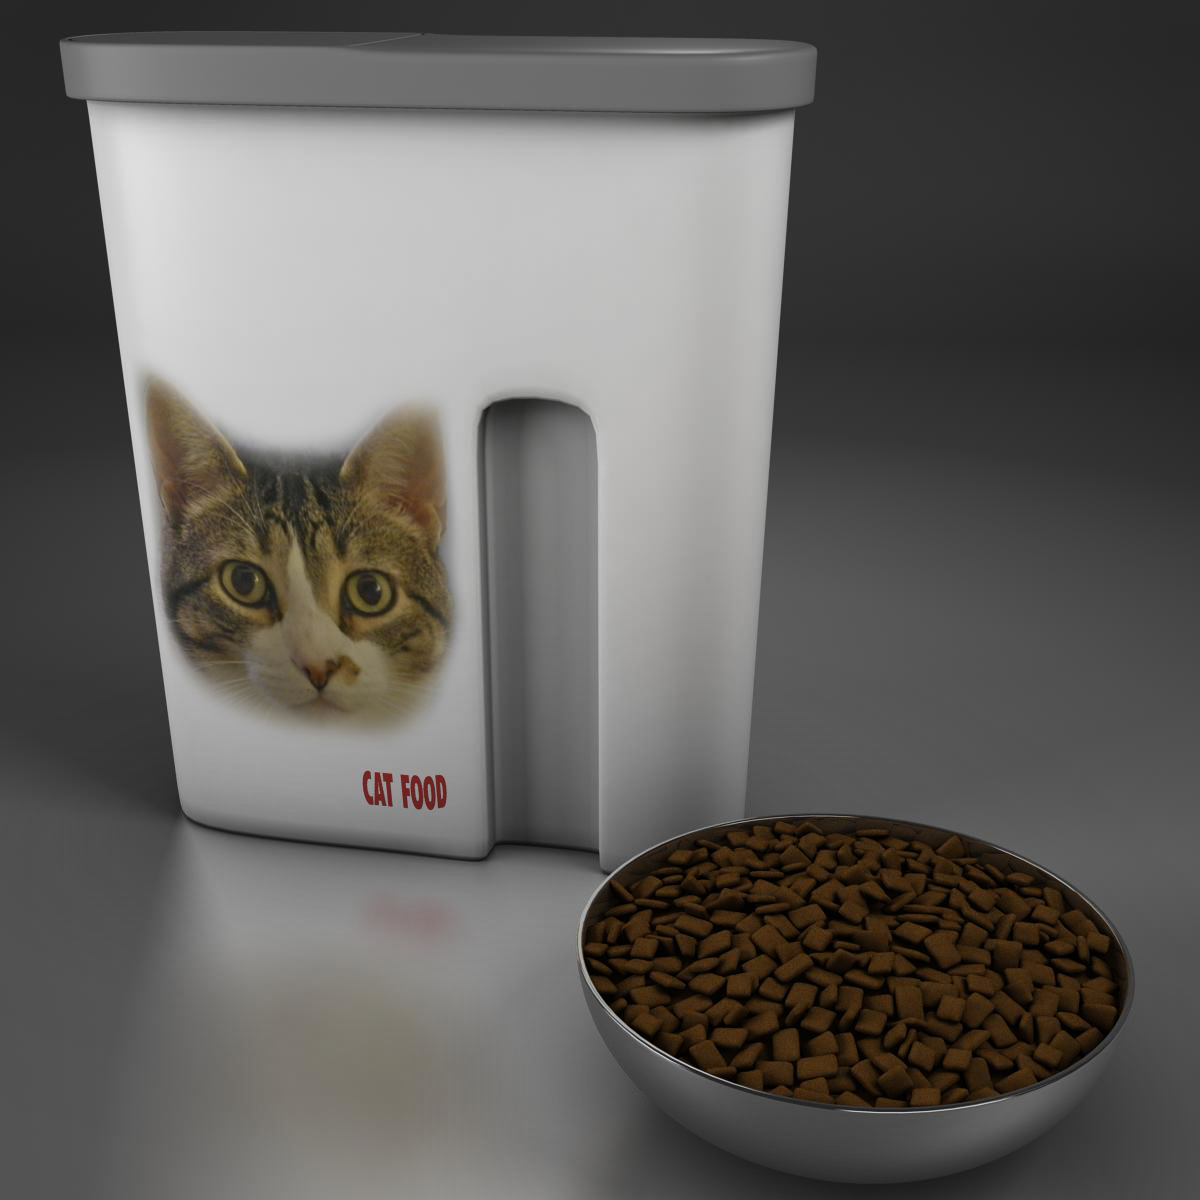 cat food 3d model 3ds max fbx c4d ma mb obj 159452